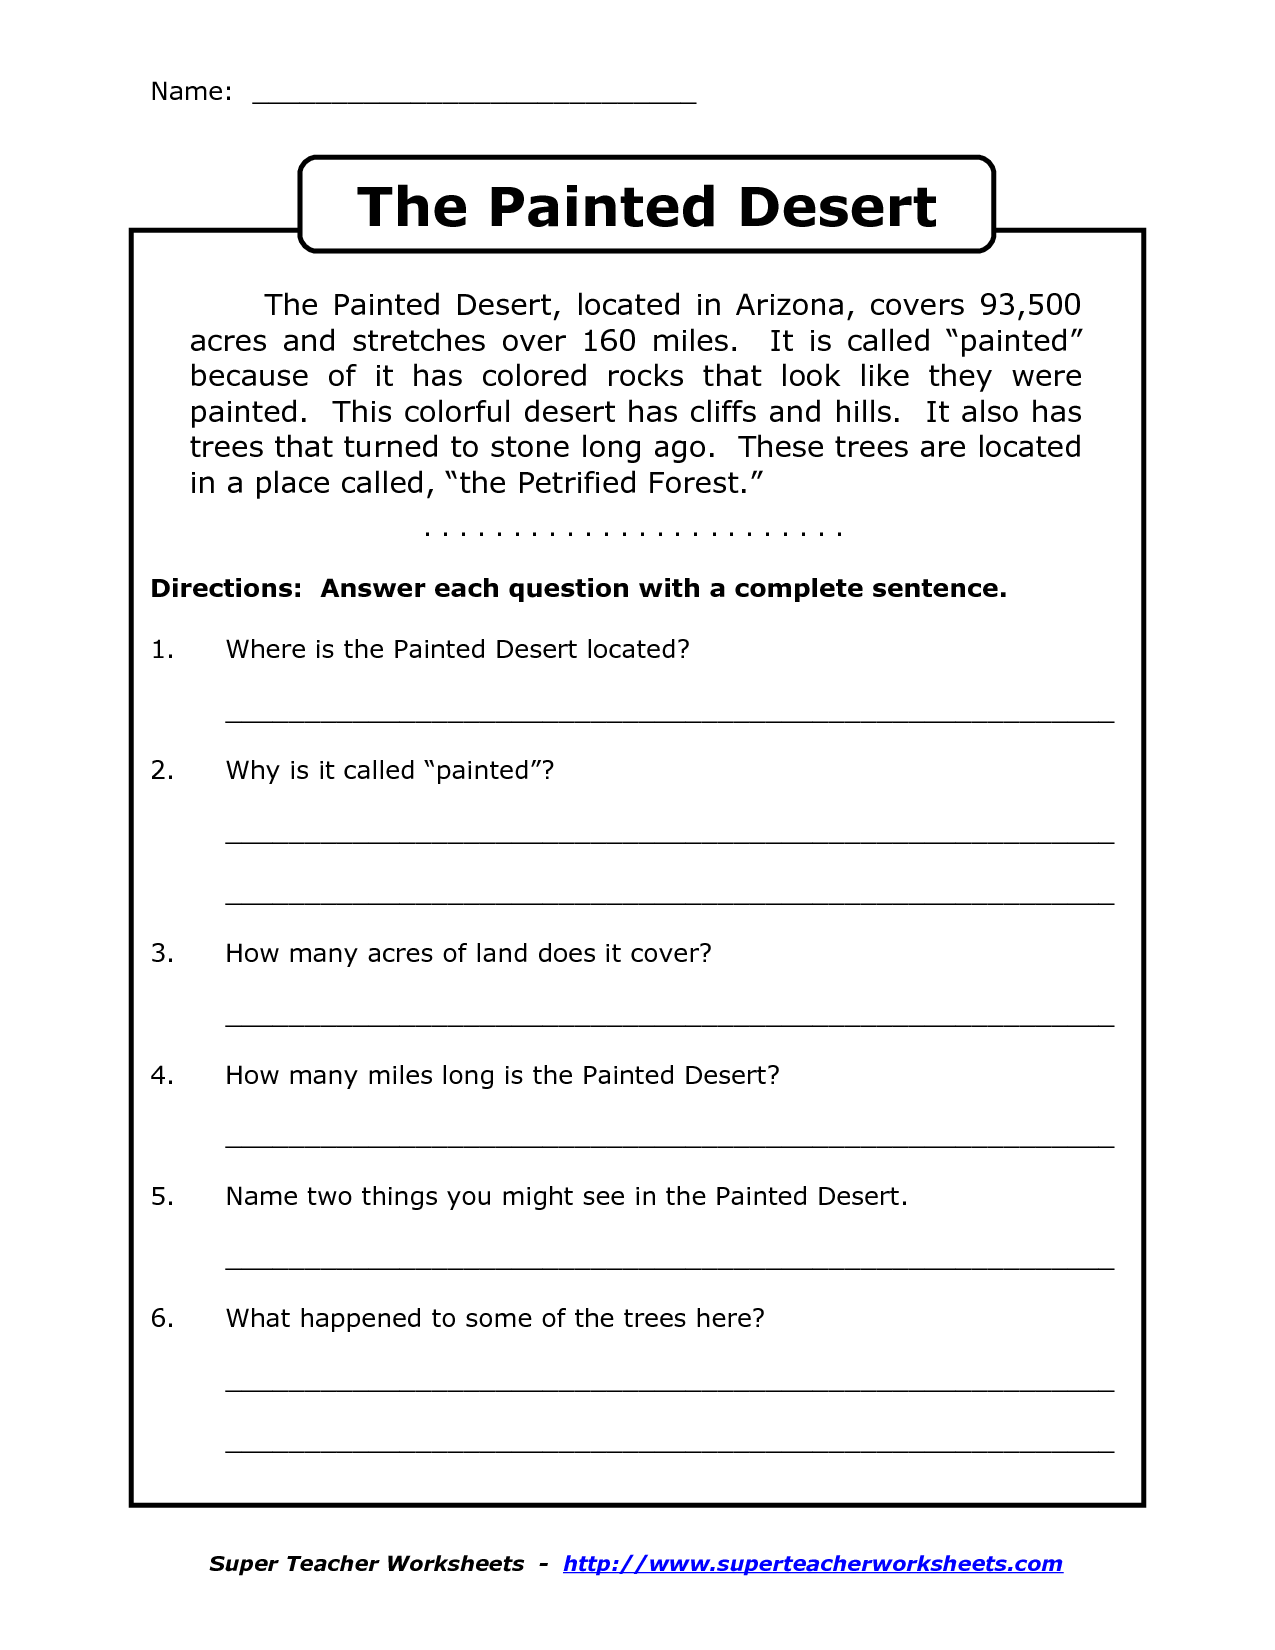 Printables 3rd Grade Reading Comprehension Worksheets Free printables reading comprehension worksheets 3rd grade free 2 coffemix 1000 images about projects